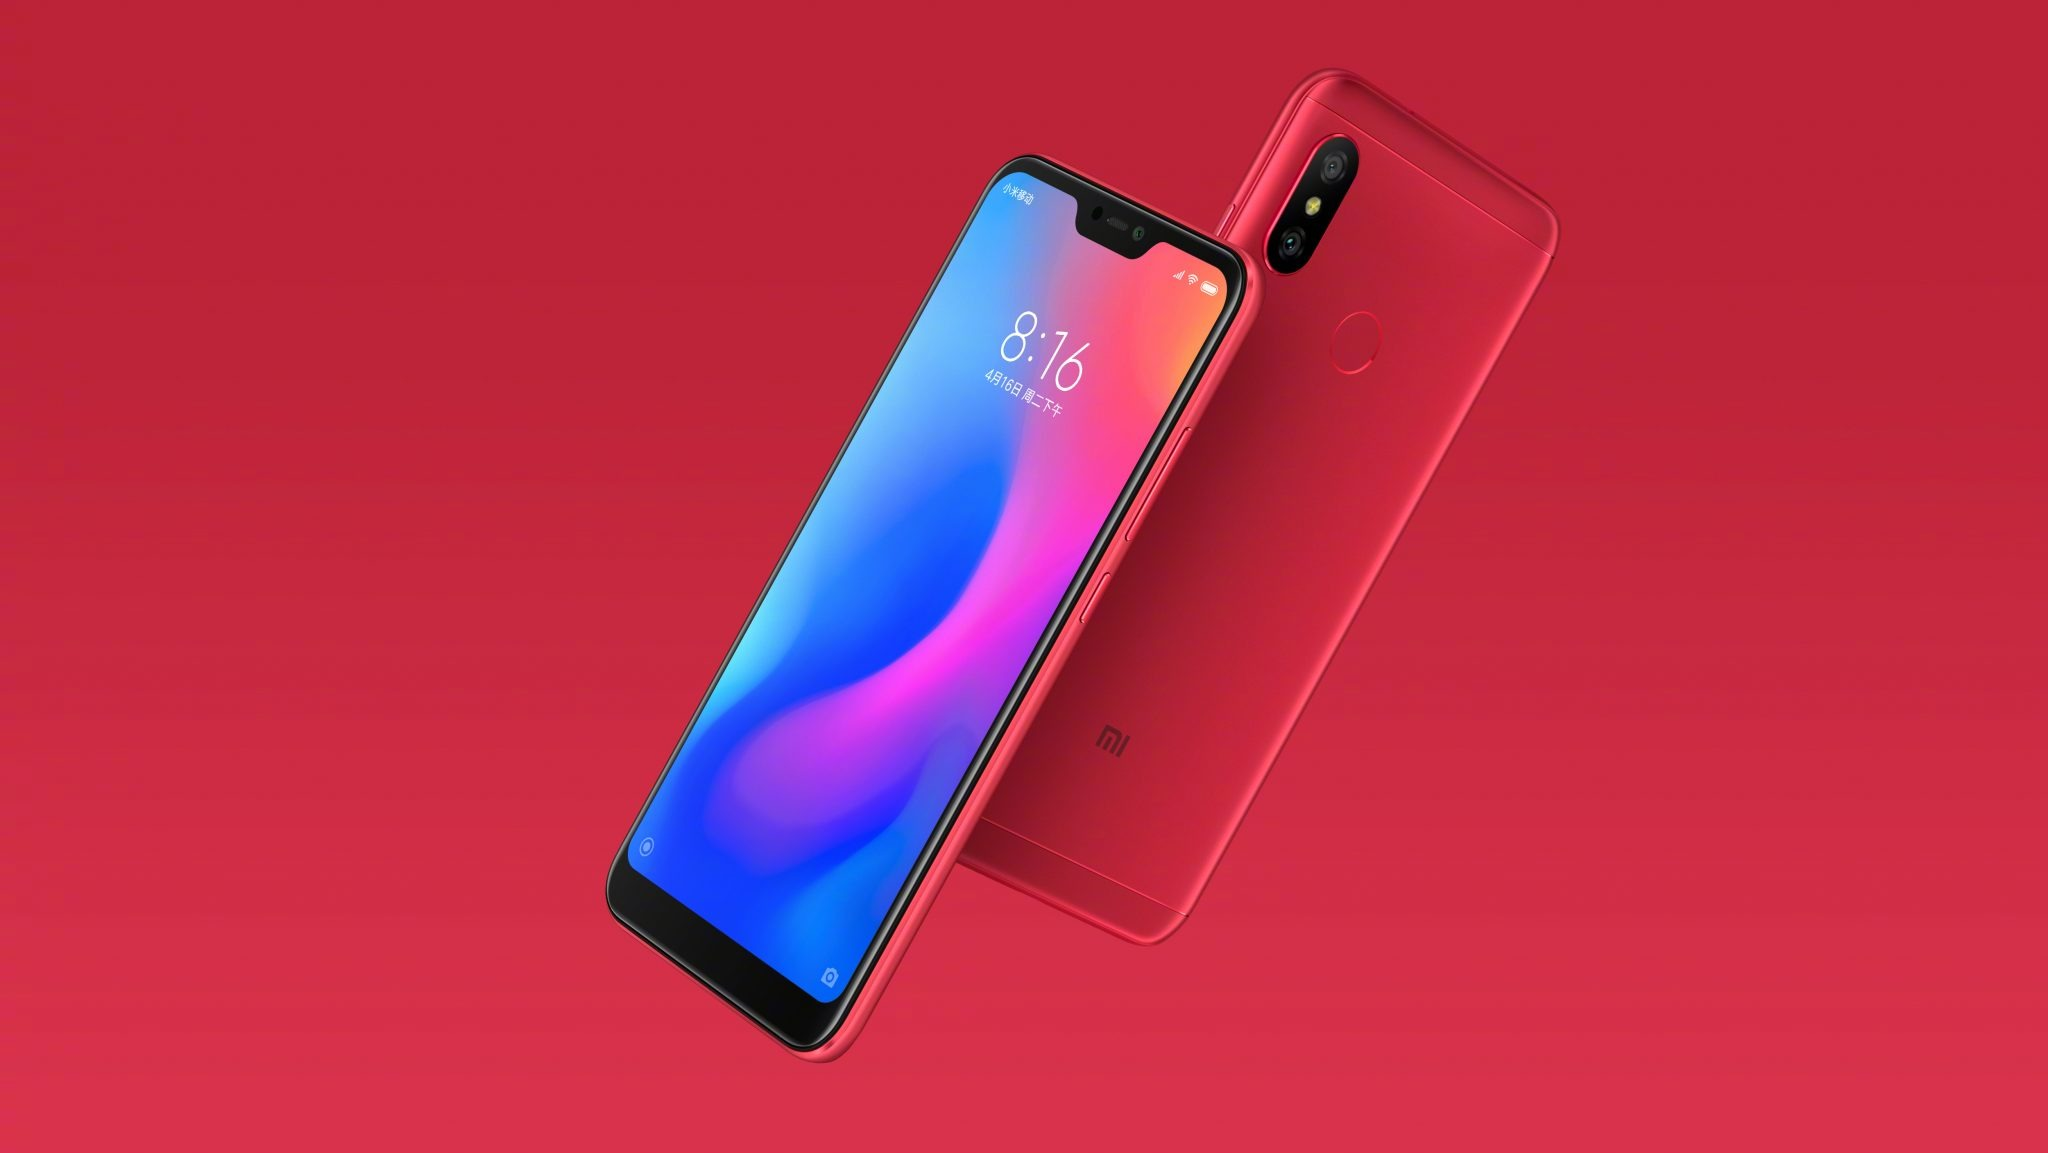 Xiaomi Redmi 6 trio launching in India soon as the teaser campaign begins 8